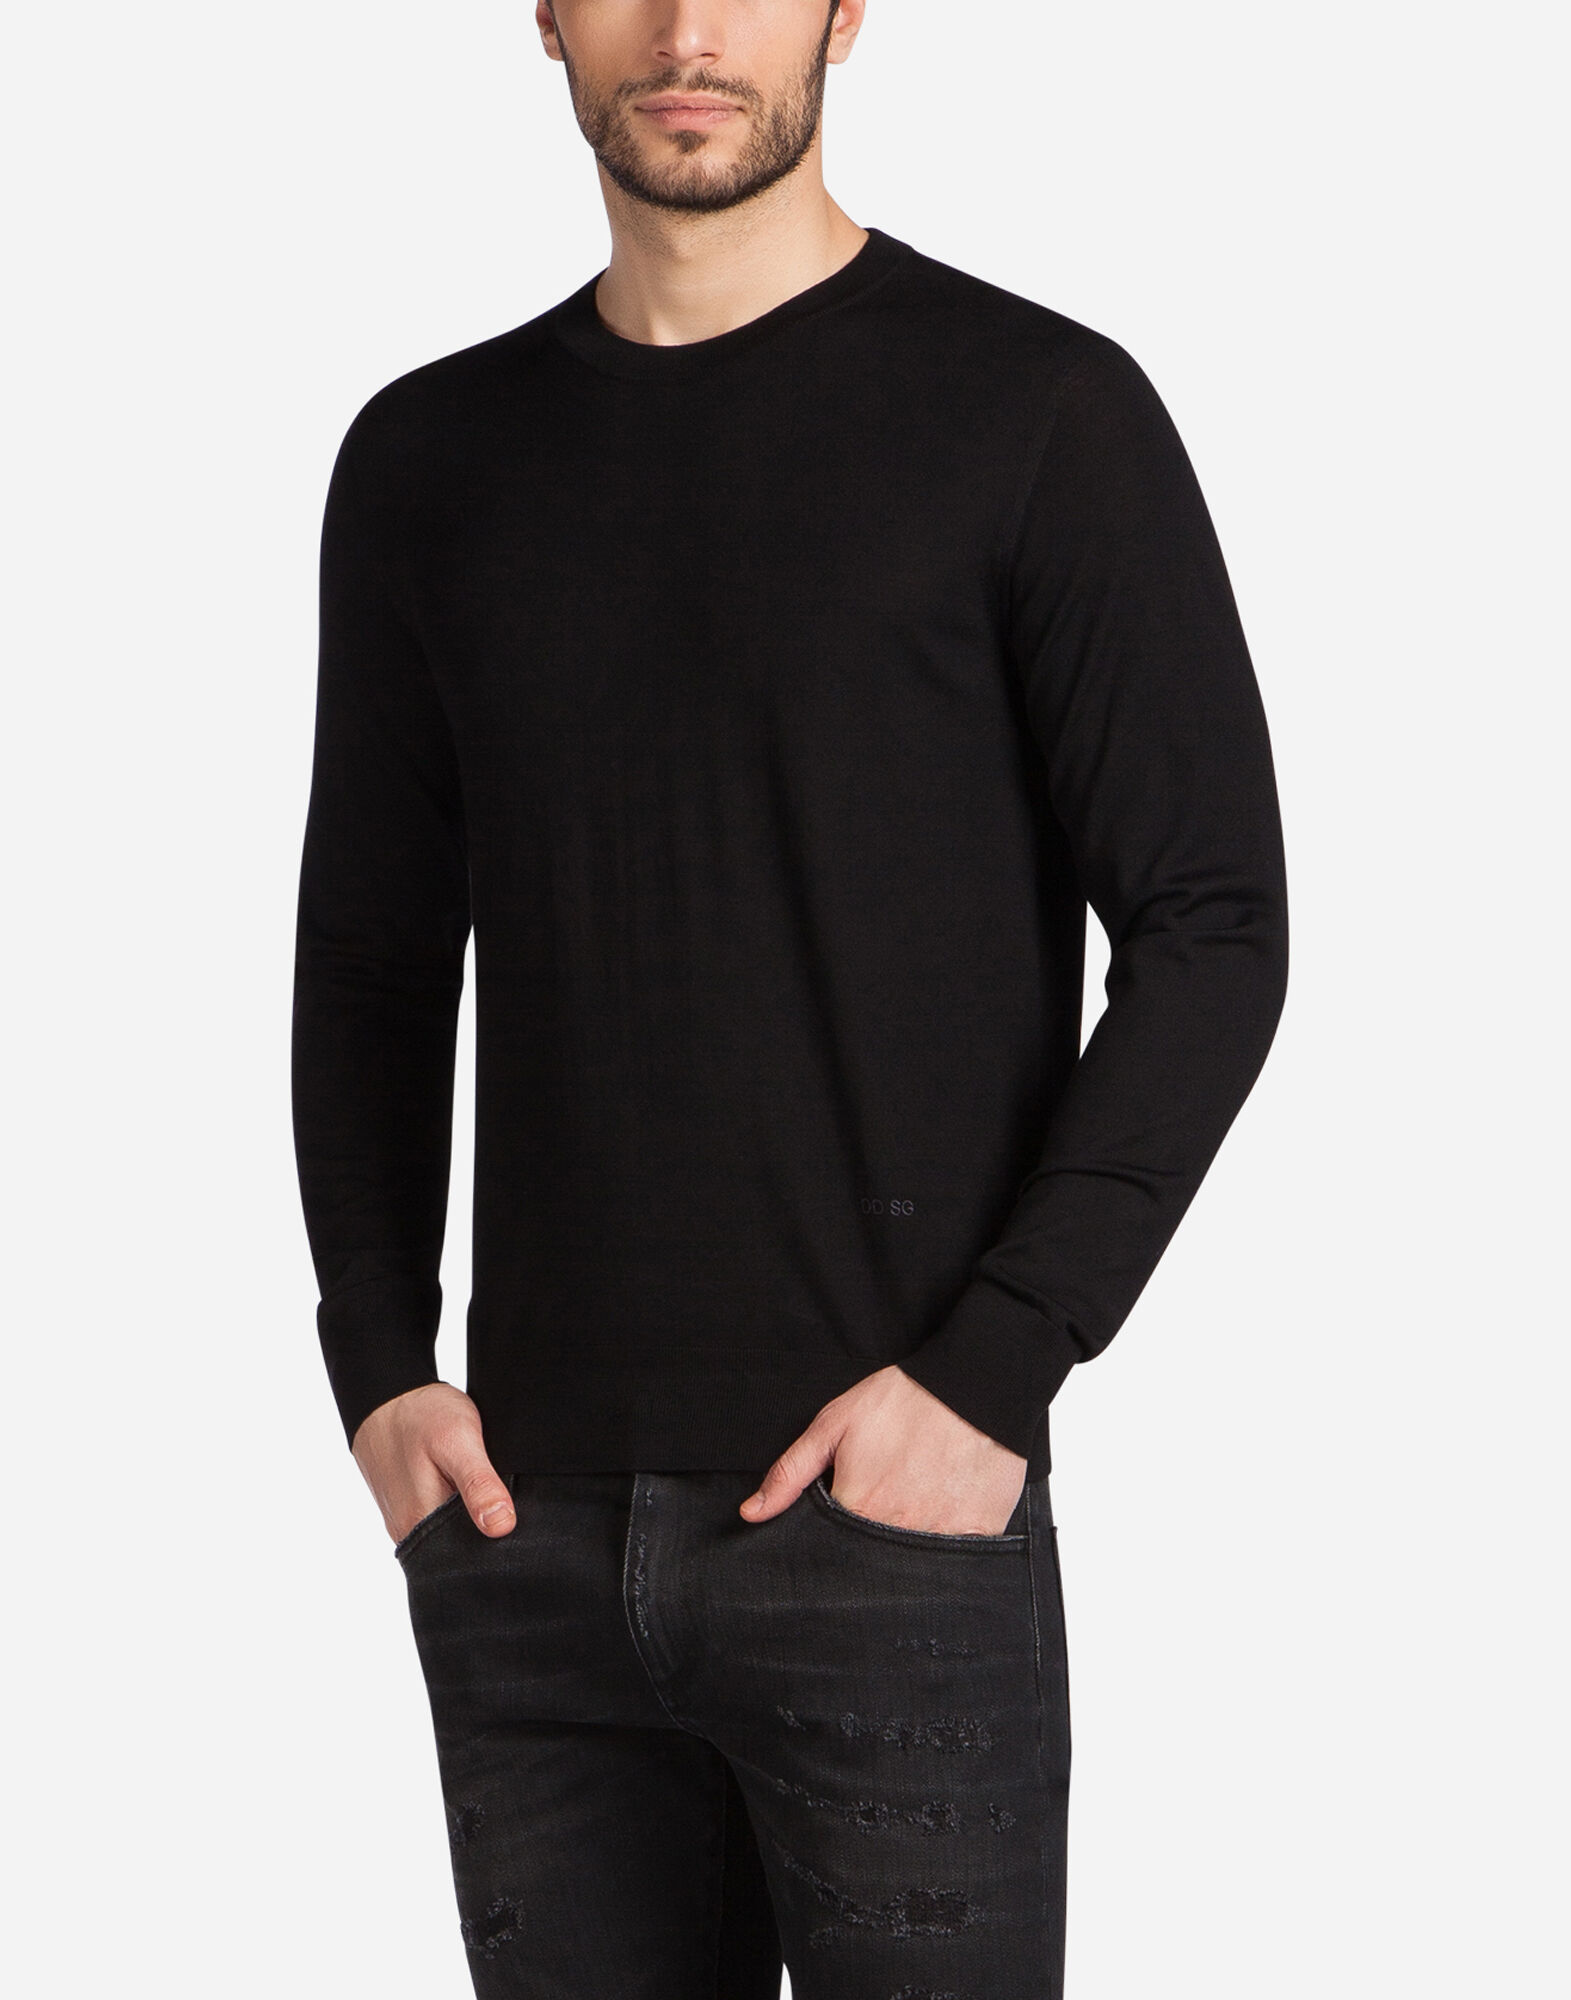 CREW NECK SWEATER IN WOOL